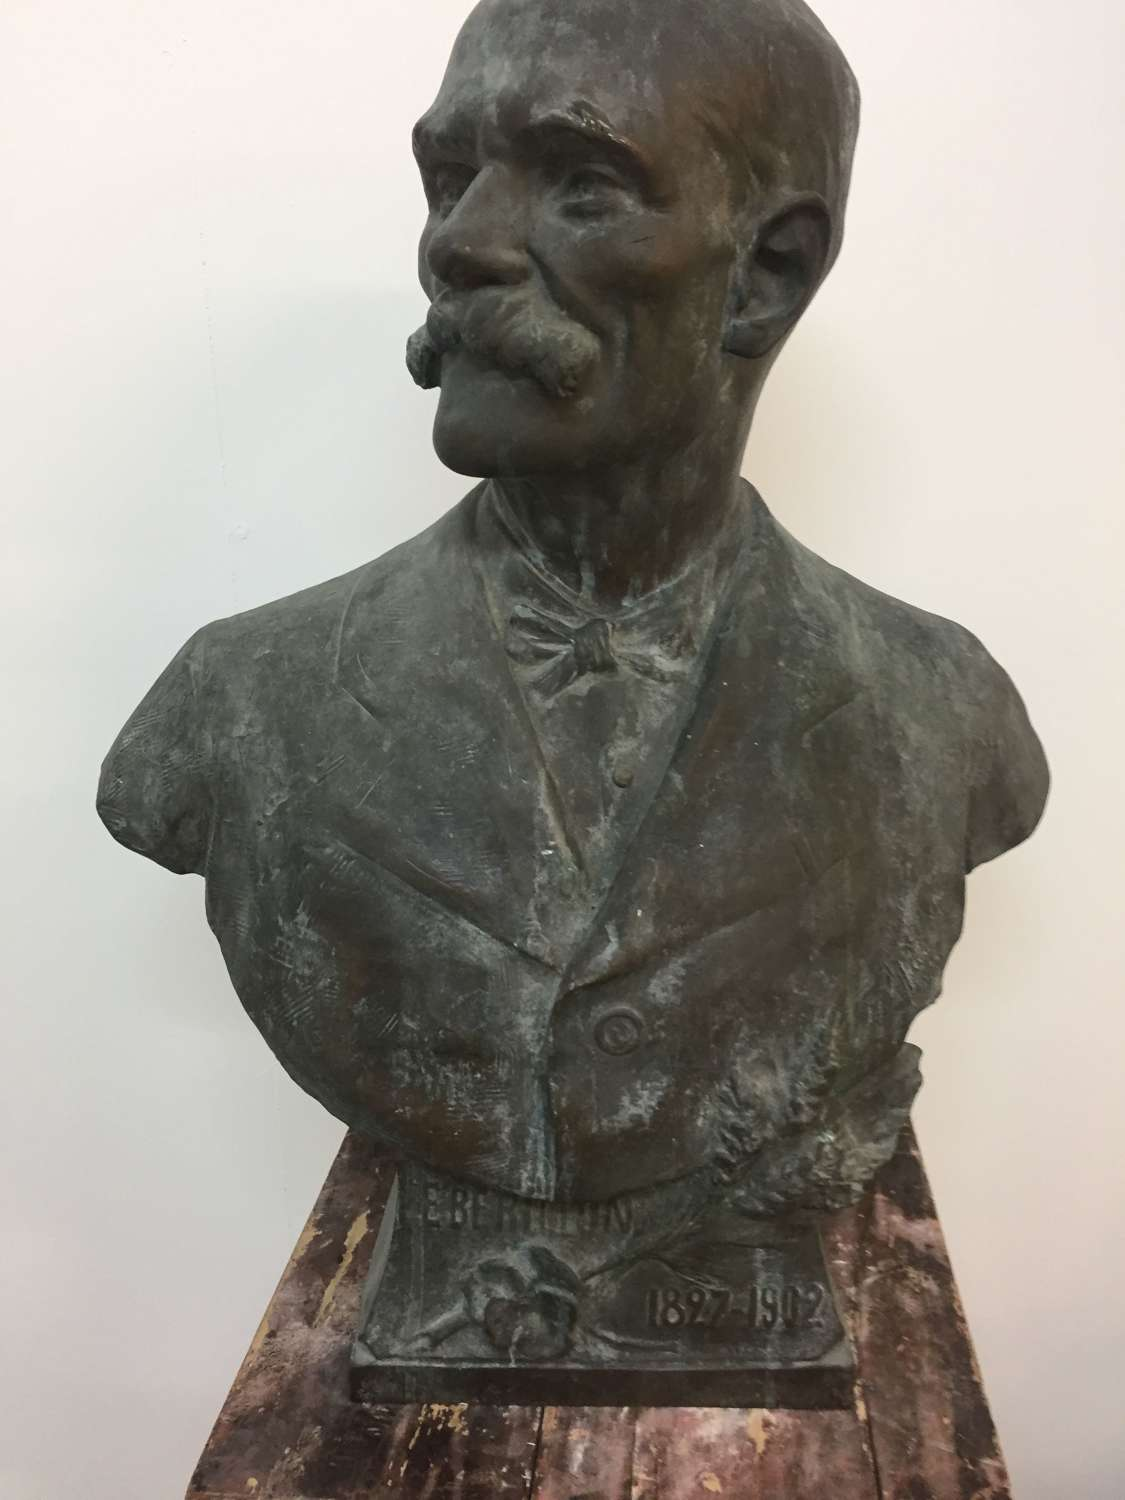 French Bronze Bust E Berillon 1827-1902 NOW SOLD